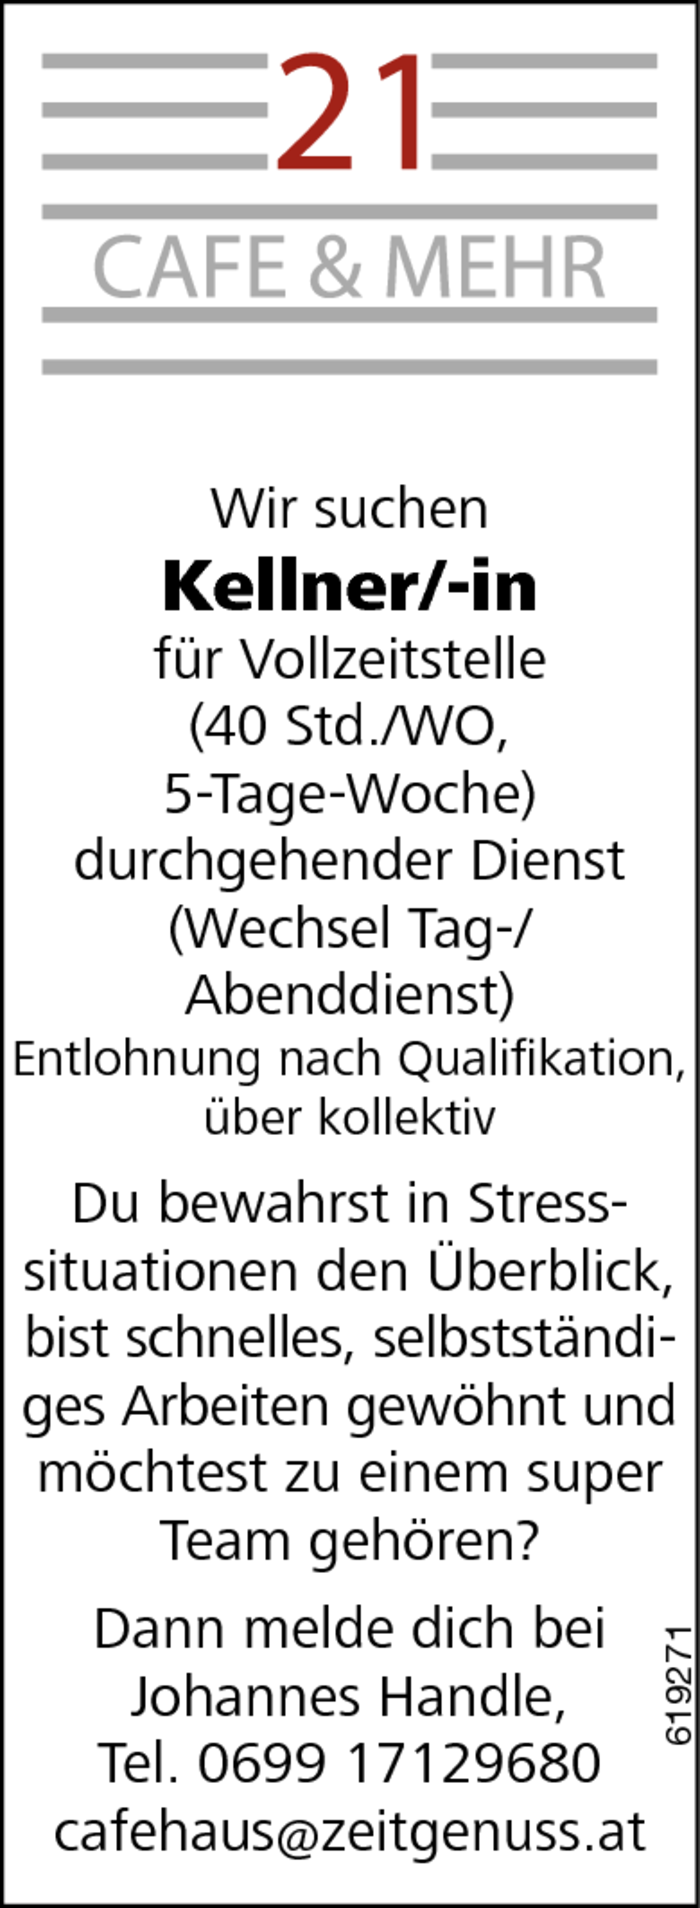 Fantastisch Kellner Job Lebenslauf Probe Ideen - Entry Level Resume ...